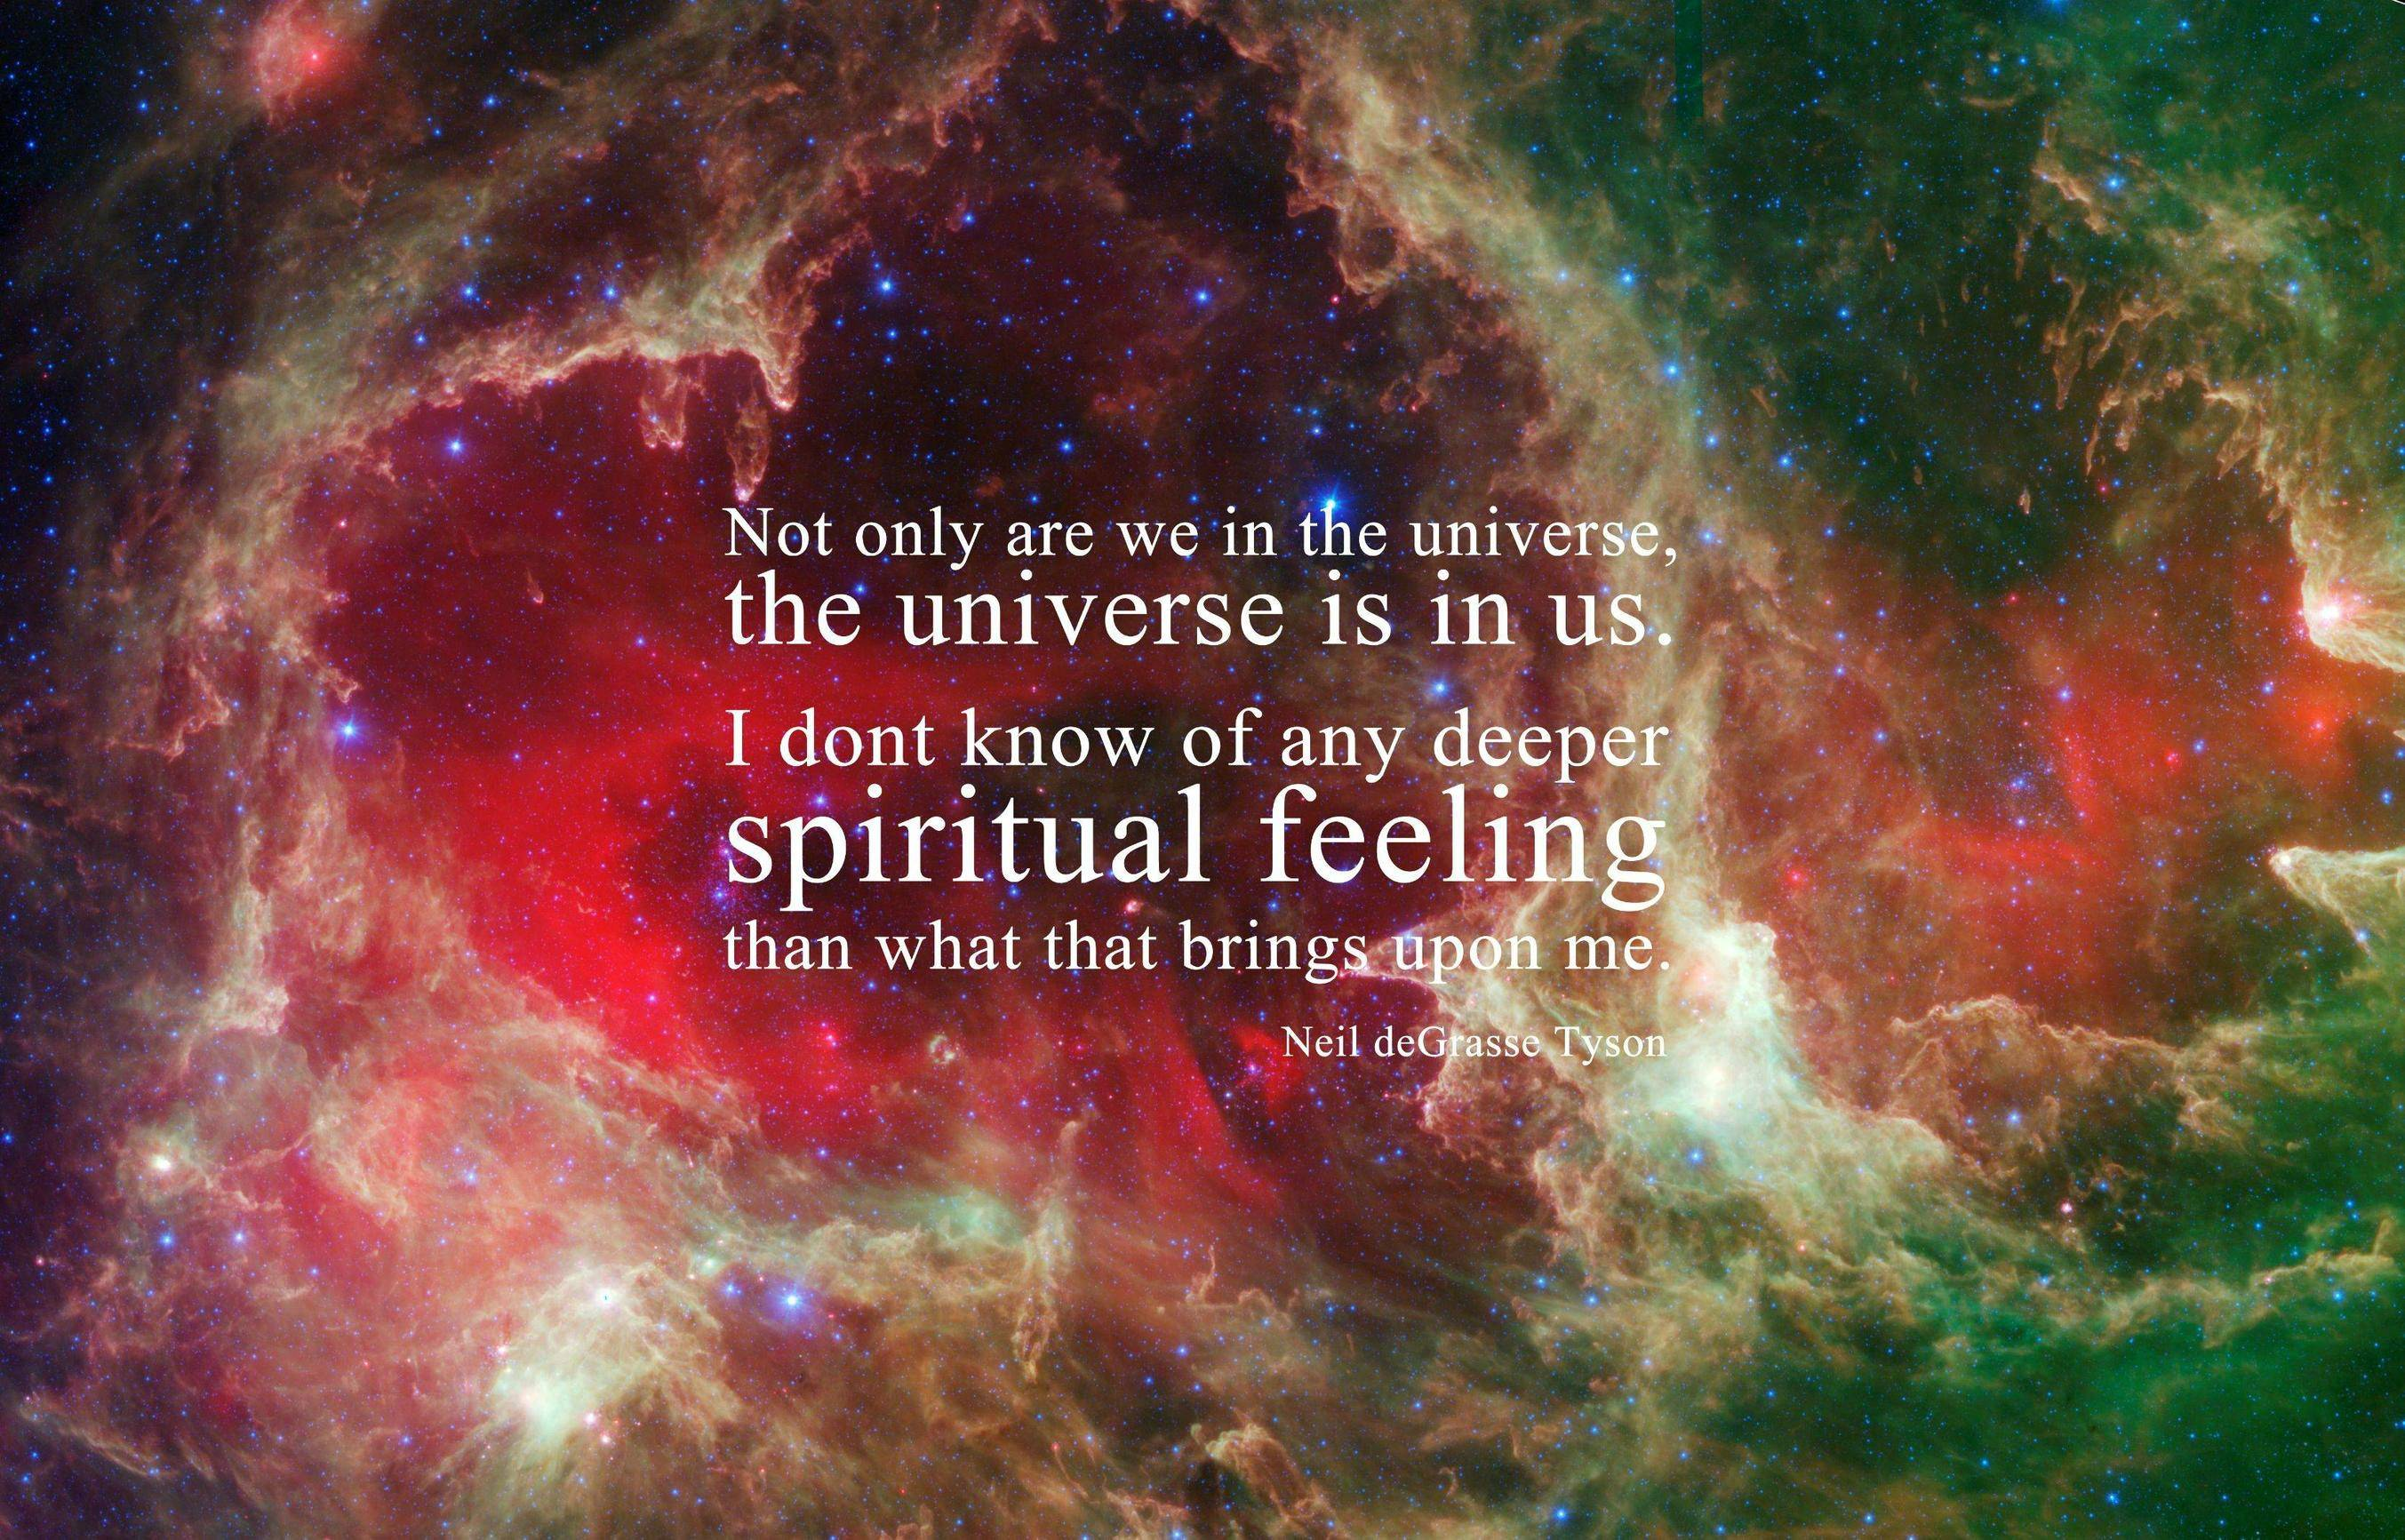 NDT - The Universe Is In Us